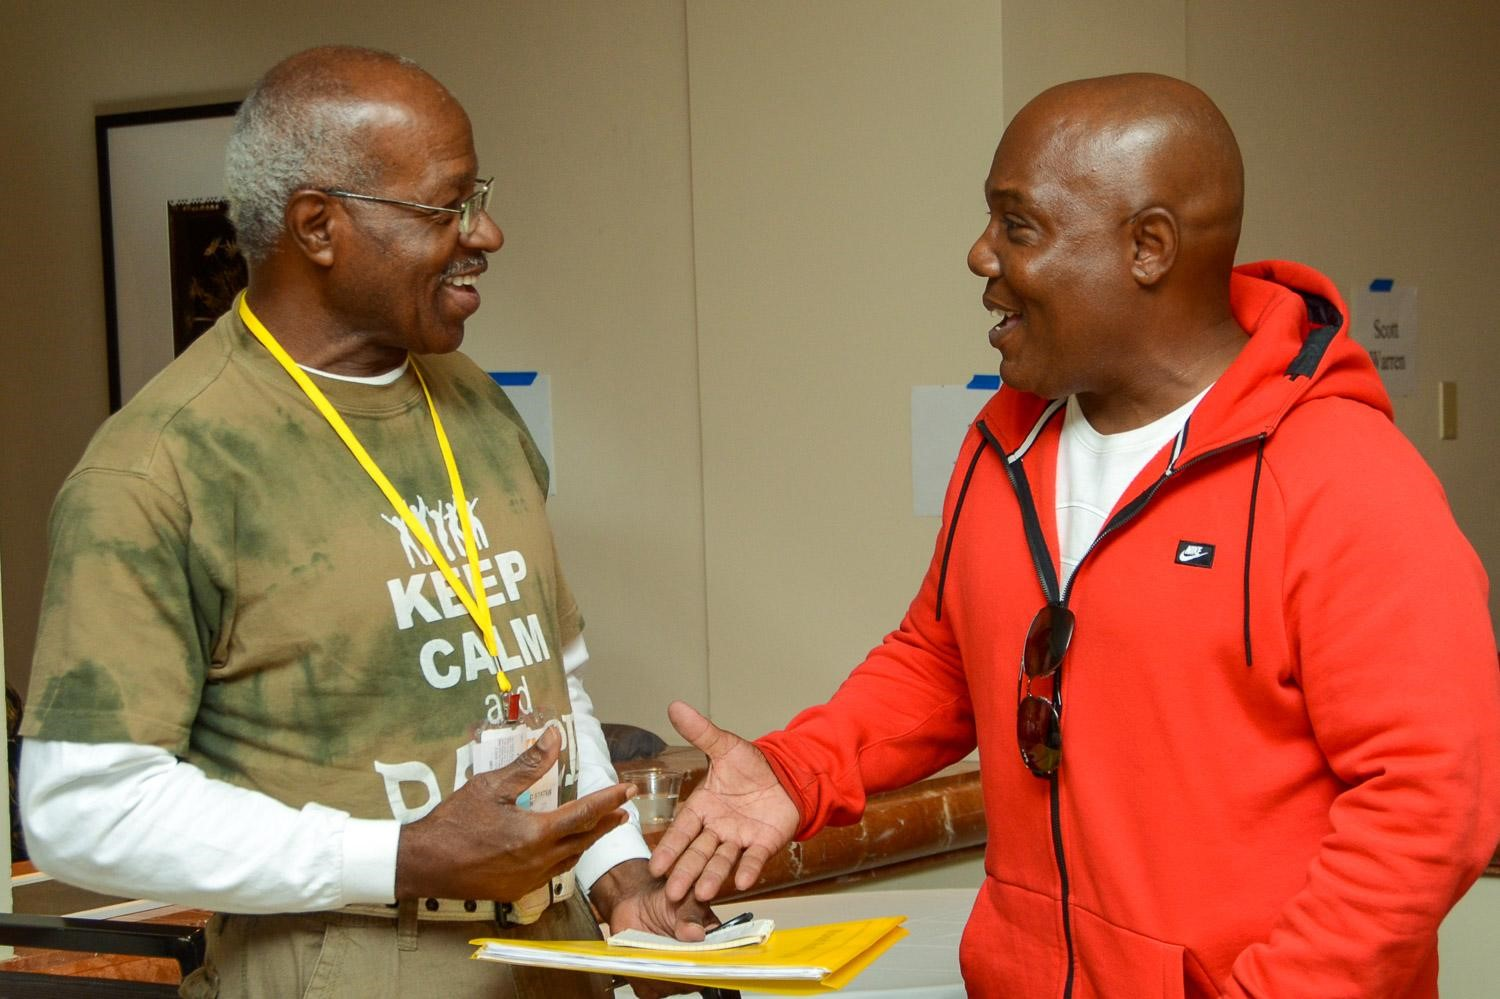 Veteran A&R executive/producer/publisher Ty Knox (right) meets a TAXI member during a One-to-One Mentor session.